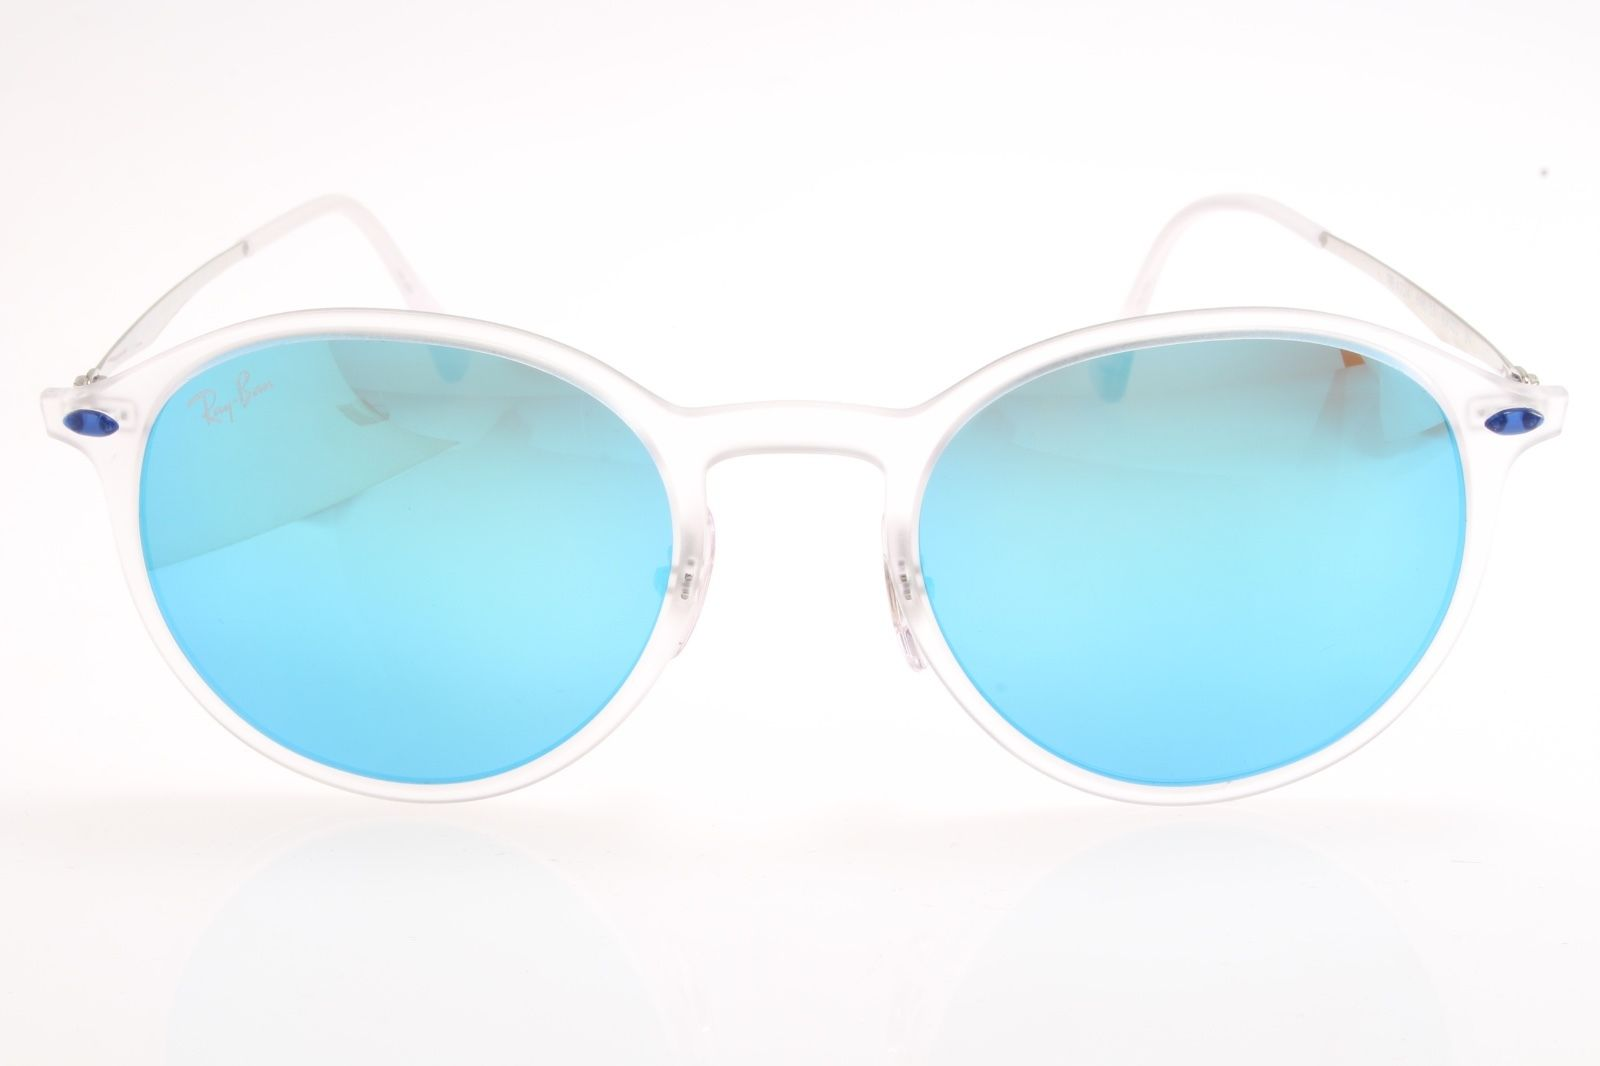 c88063a241ae1 New original Ray Ban RB Lightray 4224 646 55 49 Matte Transparent Blue  Mirrored